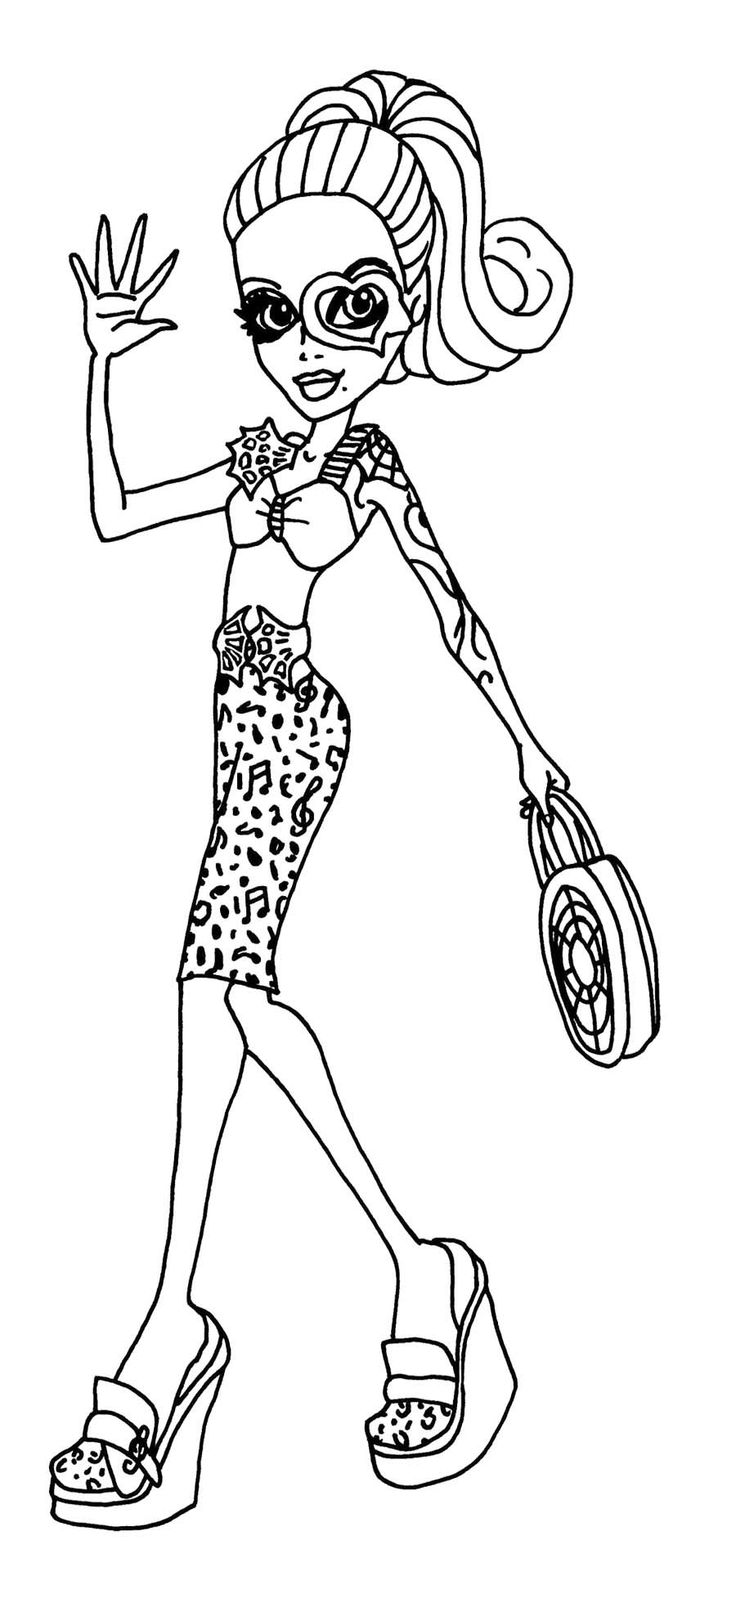 monster high operetta waving coloring page - York Coloring Pages Printable